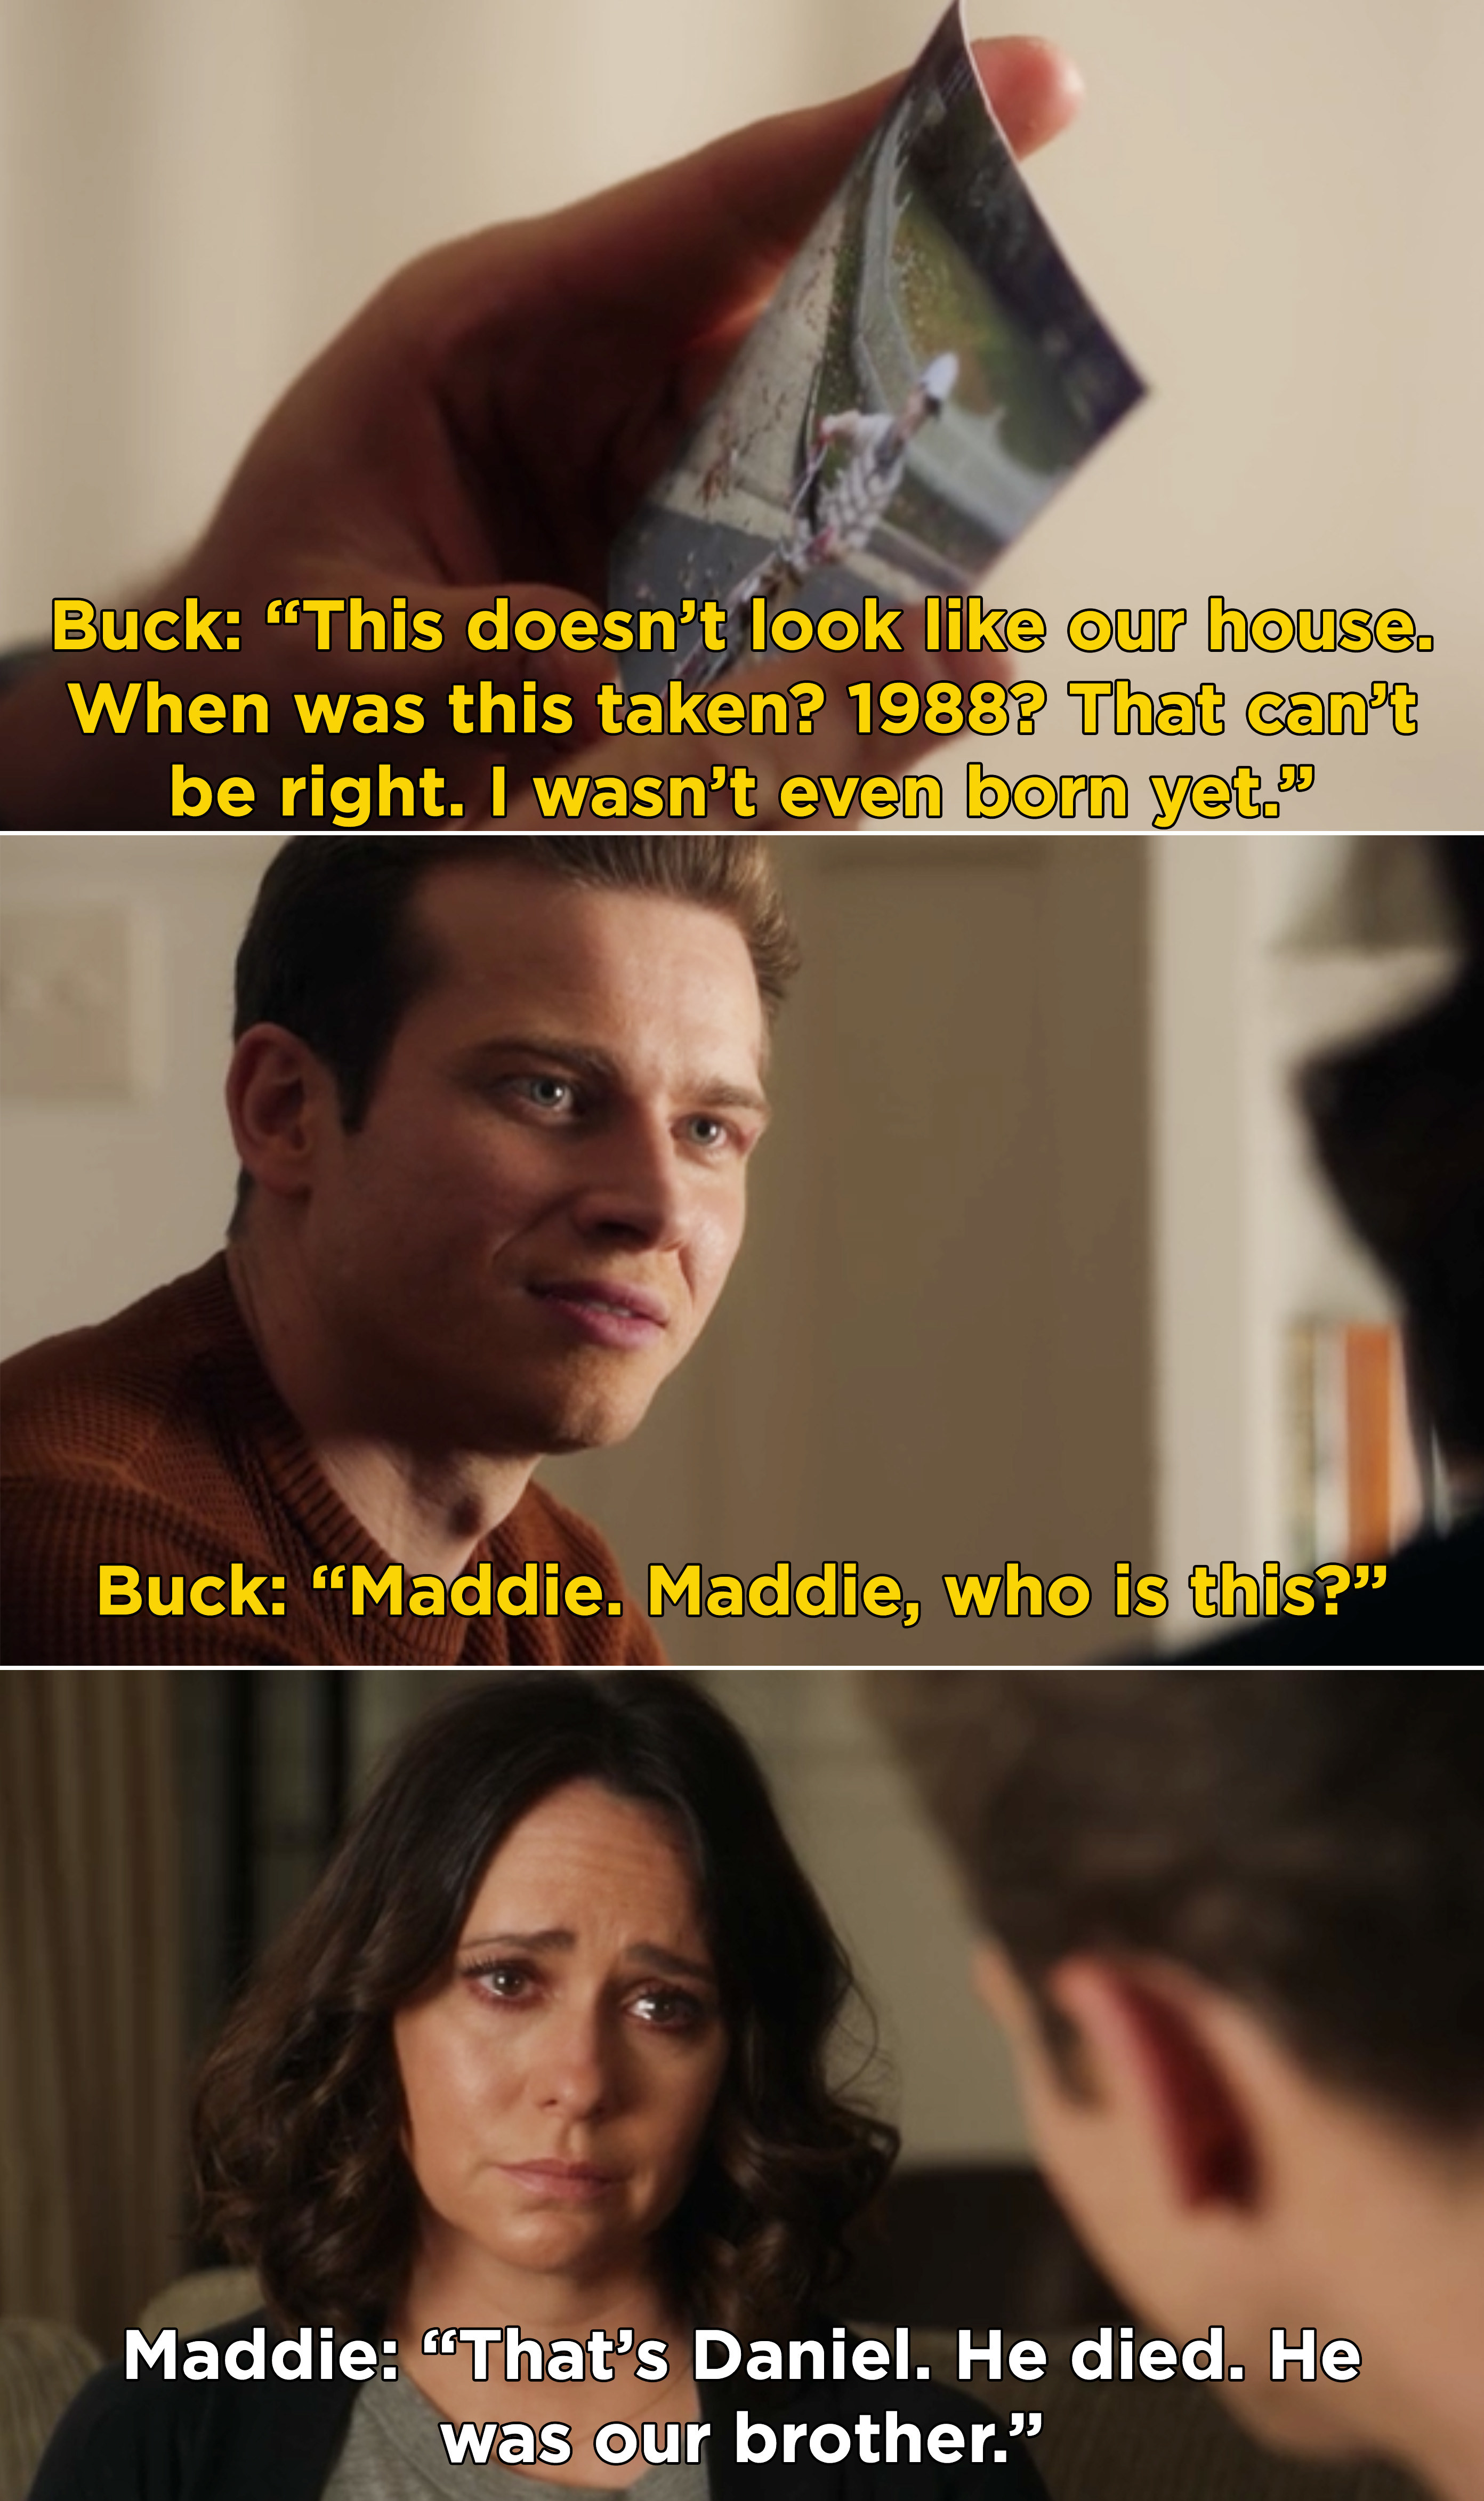 Buck finding a picture of a young boy, but it's not him. And Maddie confessing that it's Daniel, their brother who died